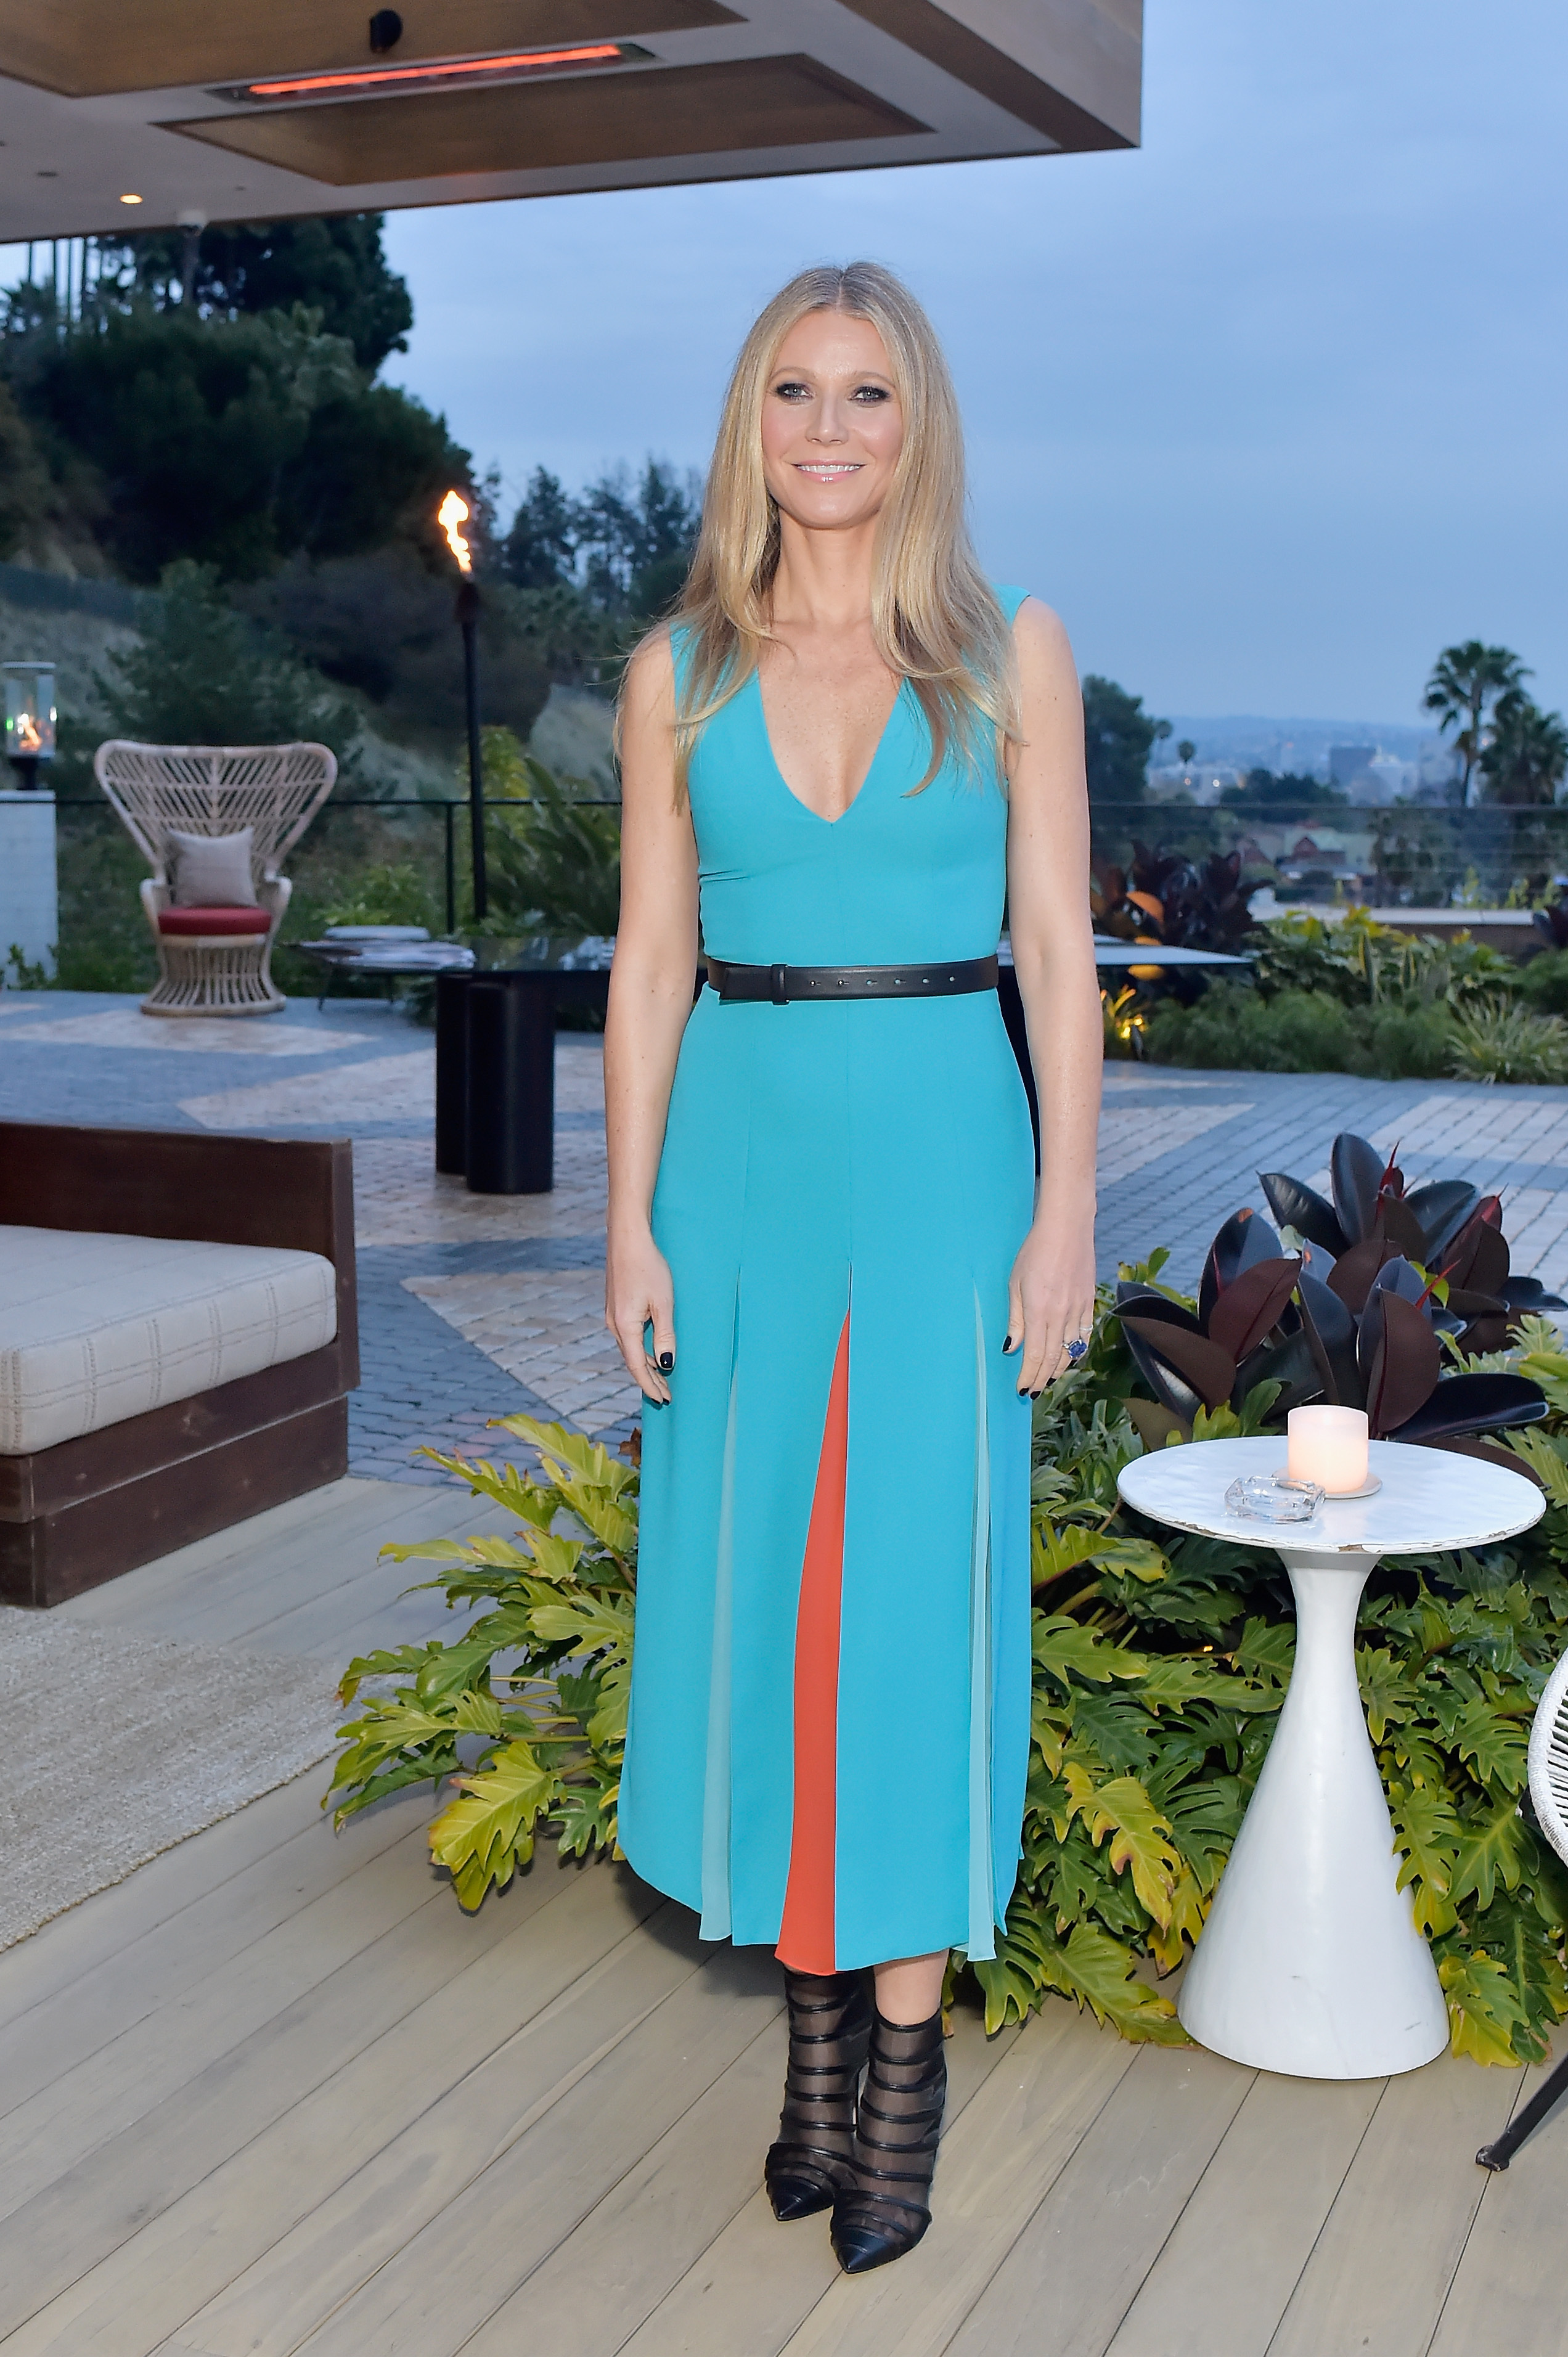 Gwyneth Paltrow attends The Hollywood Reporter and Jimmy Choo Power Stylists Dinner in Los Angeles on March 20, 2018.